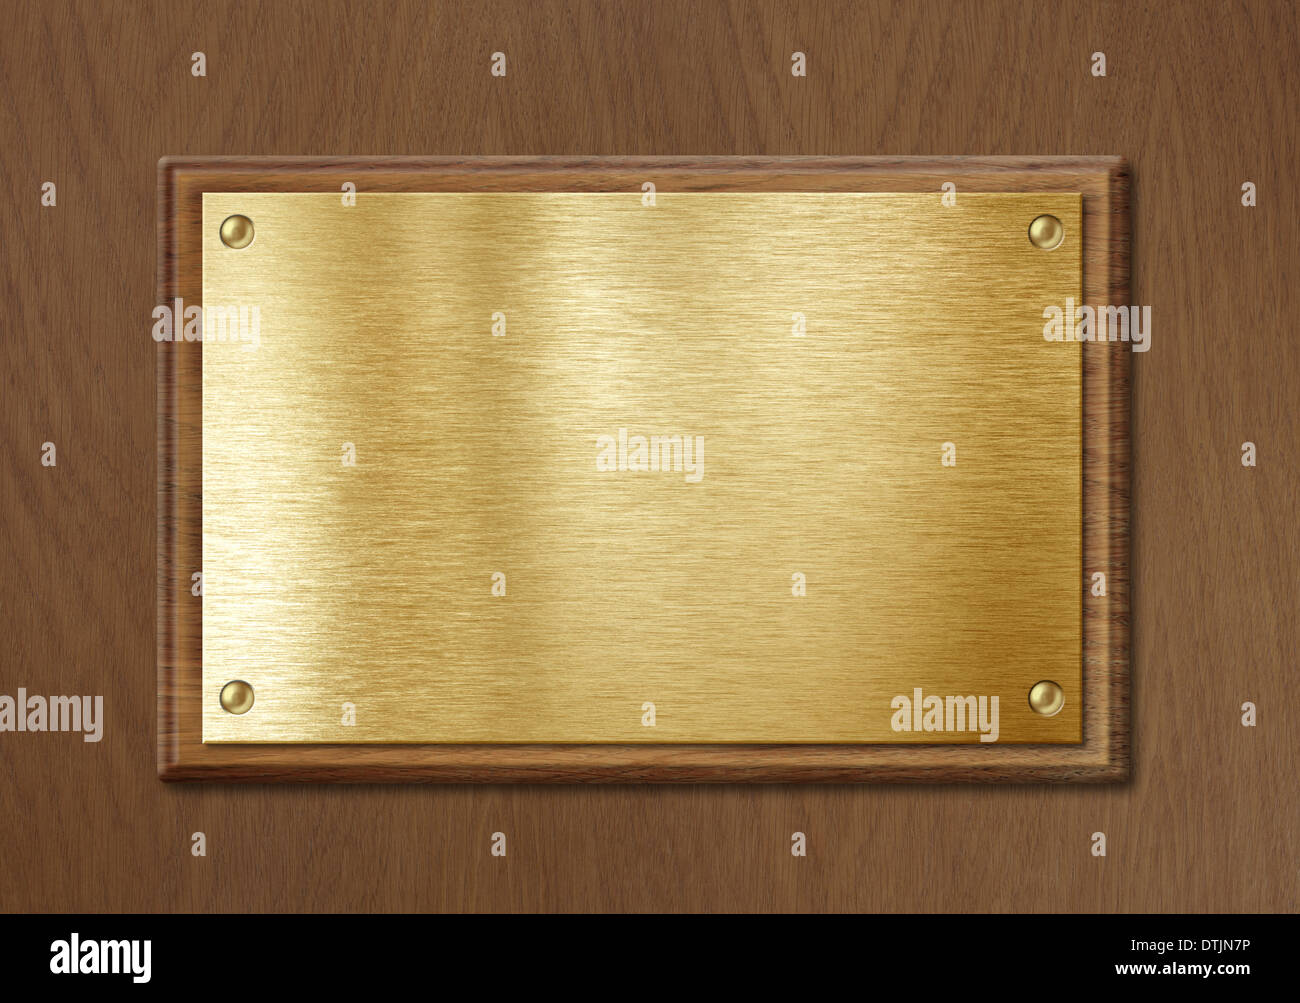 golden or brass plate for nameboard or diploma background in wooden frame - Stock Image